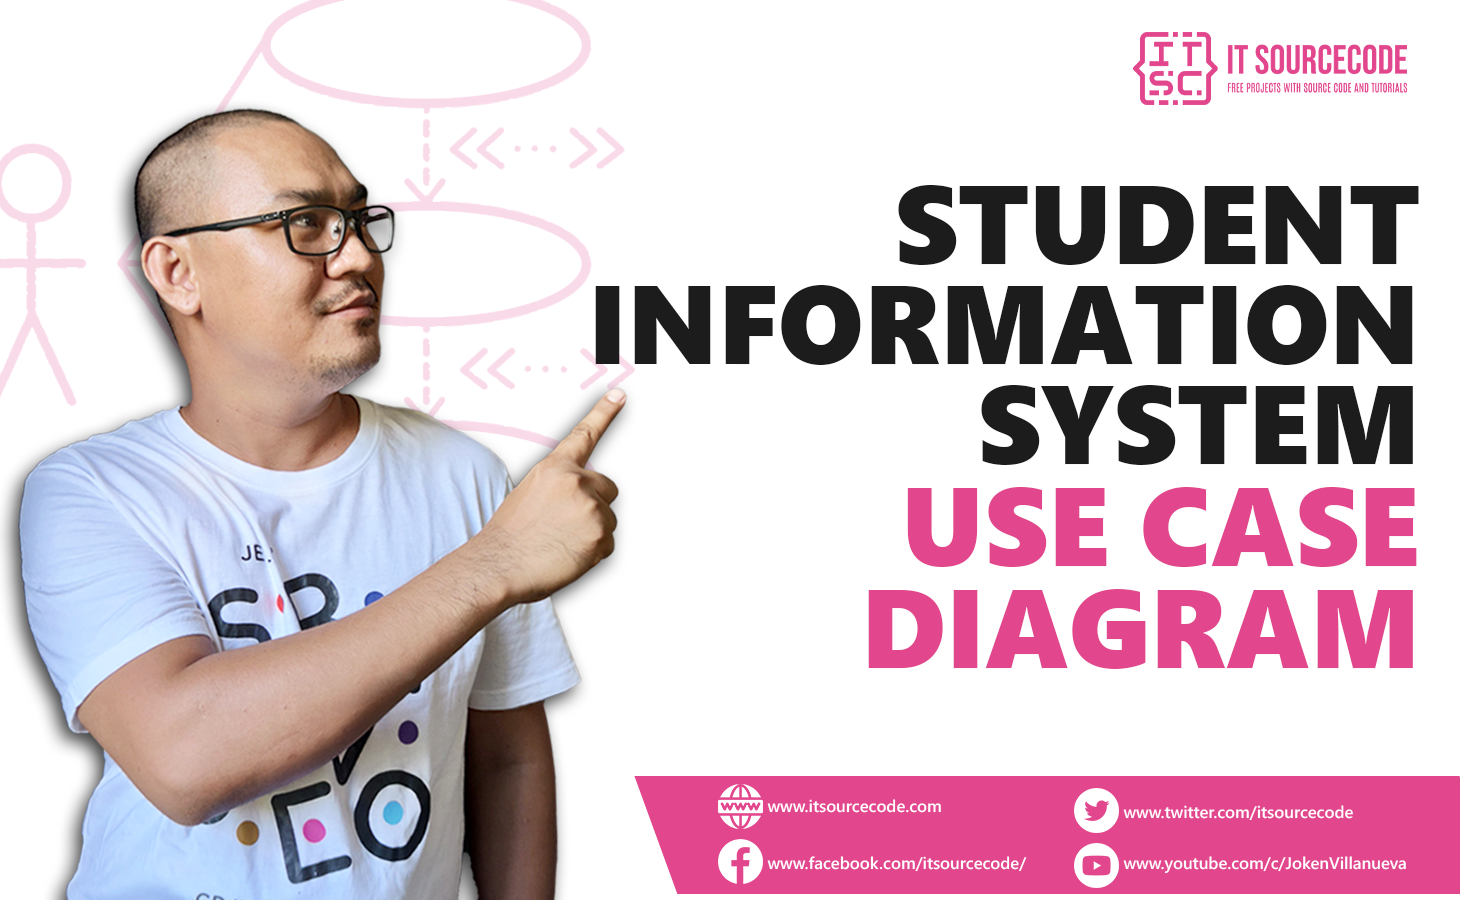 Use Case diagram for Student Information System